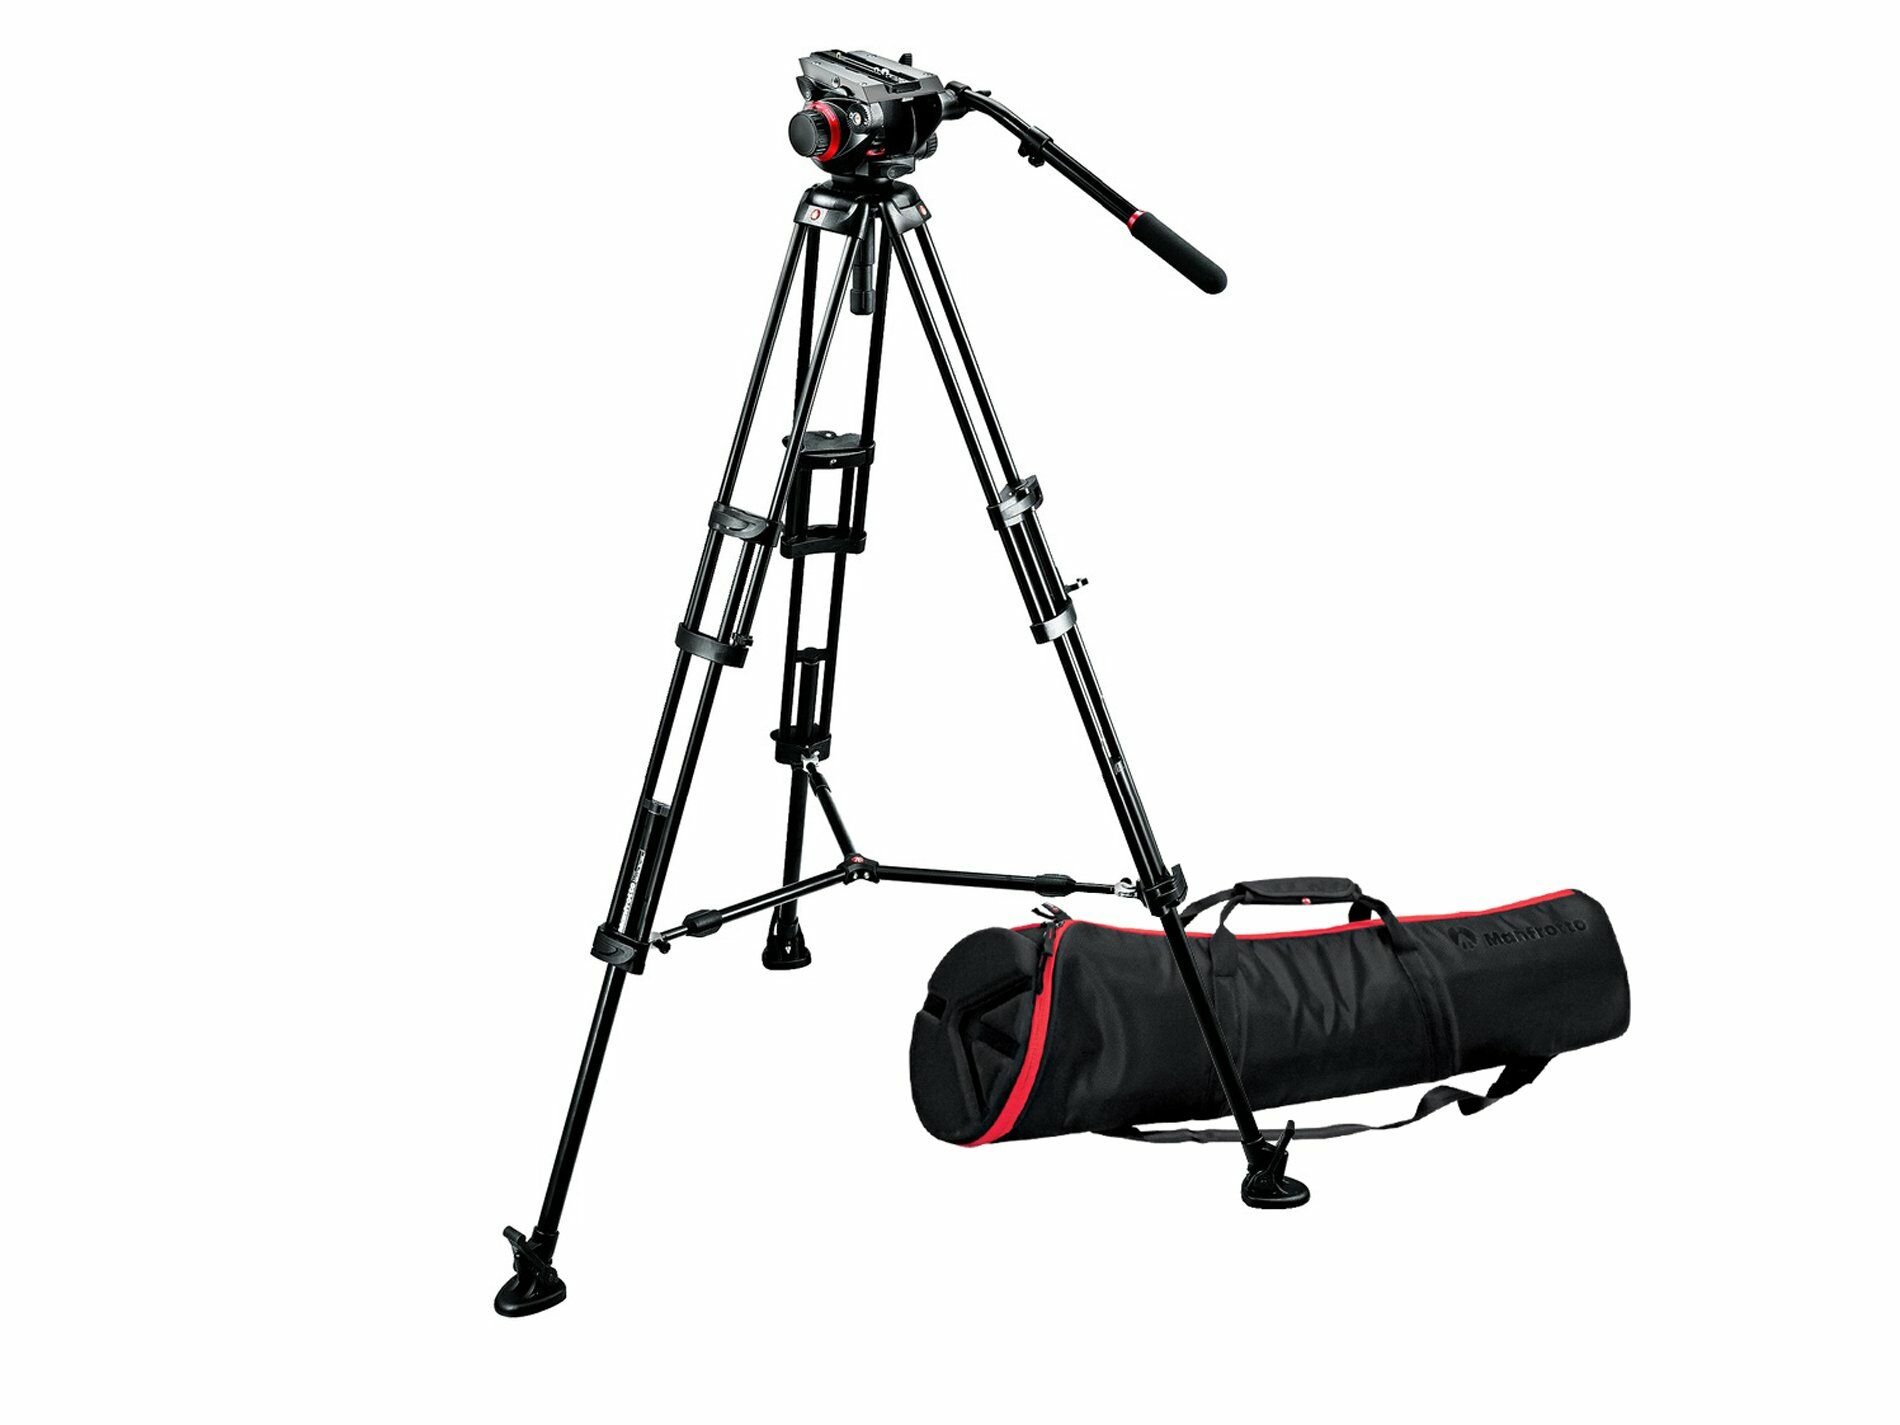 Manfrotto 504HD,546BK Videostativ Kit